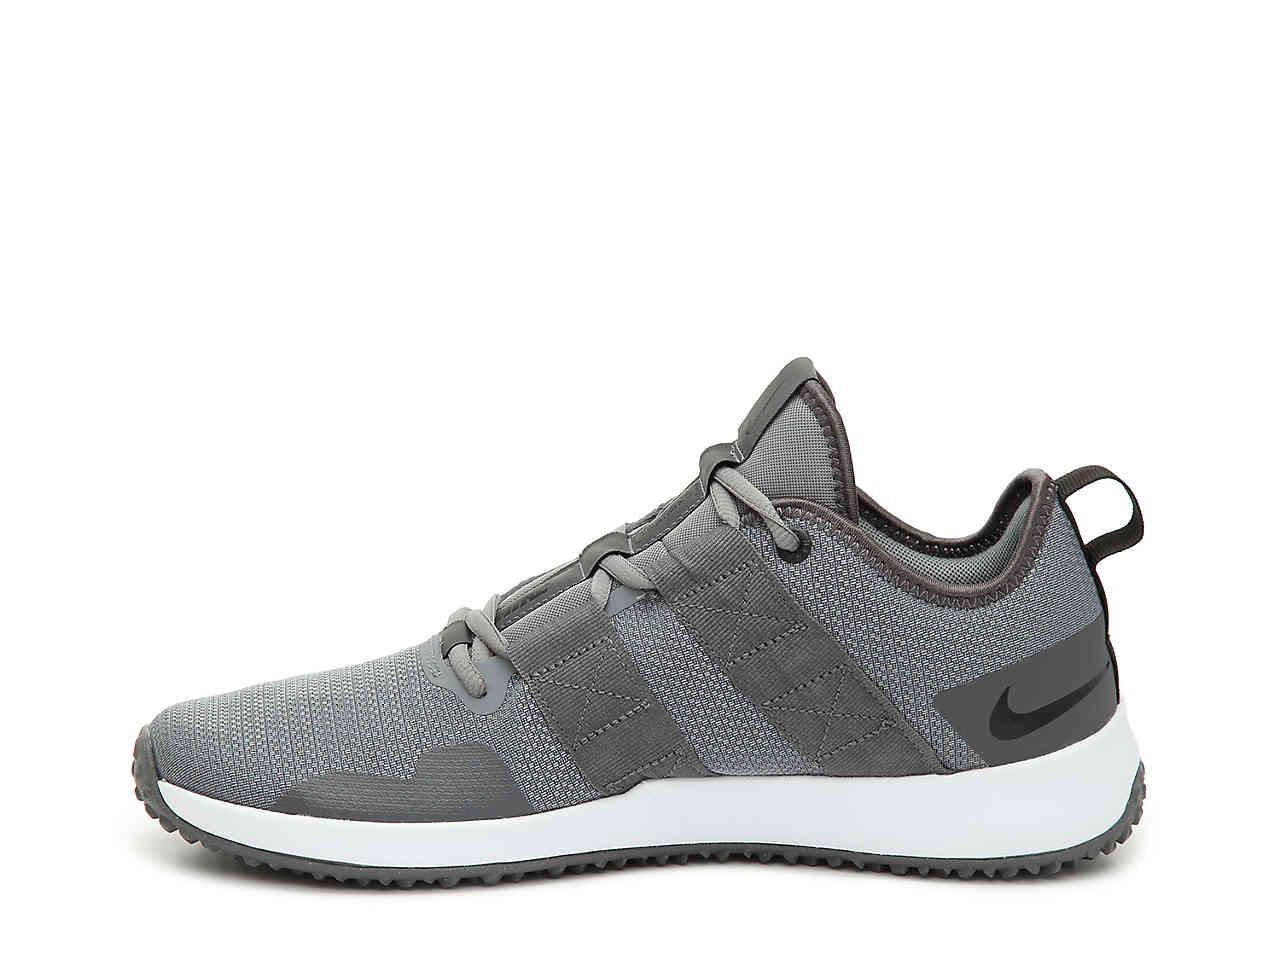 58880a0c14cbe Nike Varsity Compete Tr 2 Training Shoe in Gray for Men - Lyst